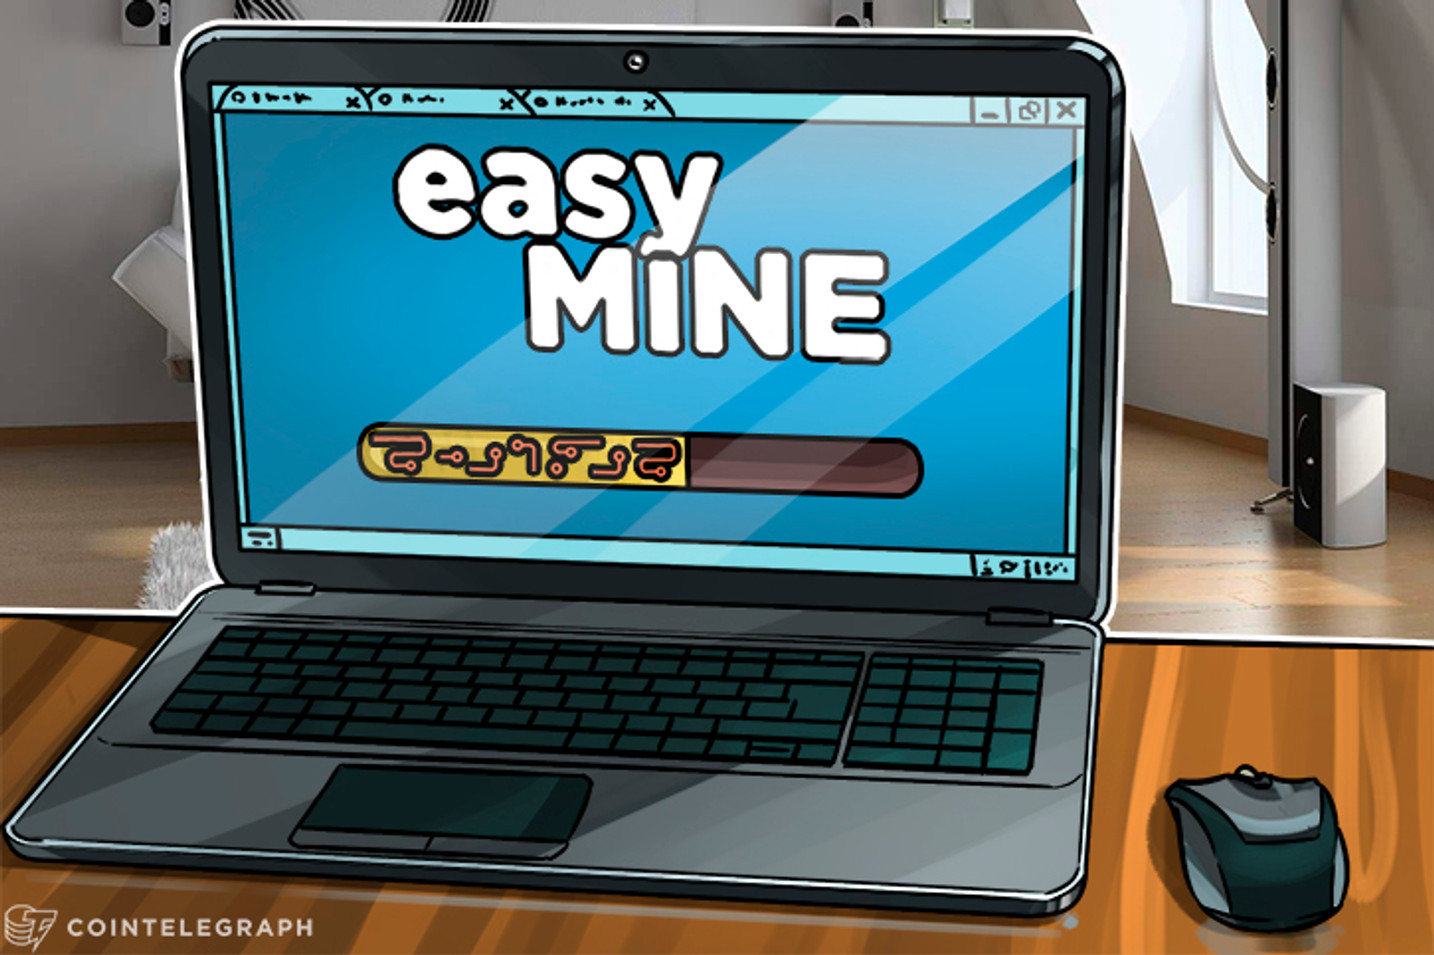 EasyMINE Takes Aim at Intelligent Mine Management